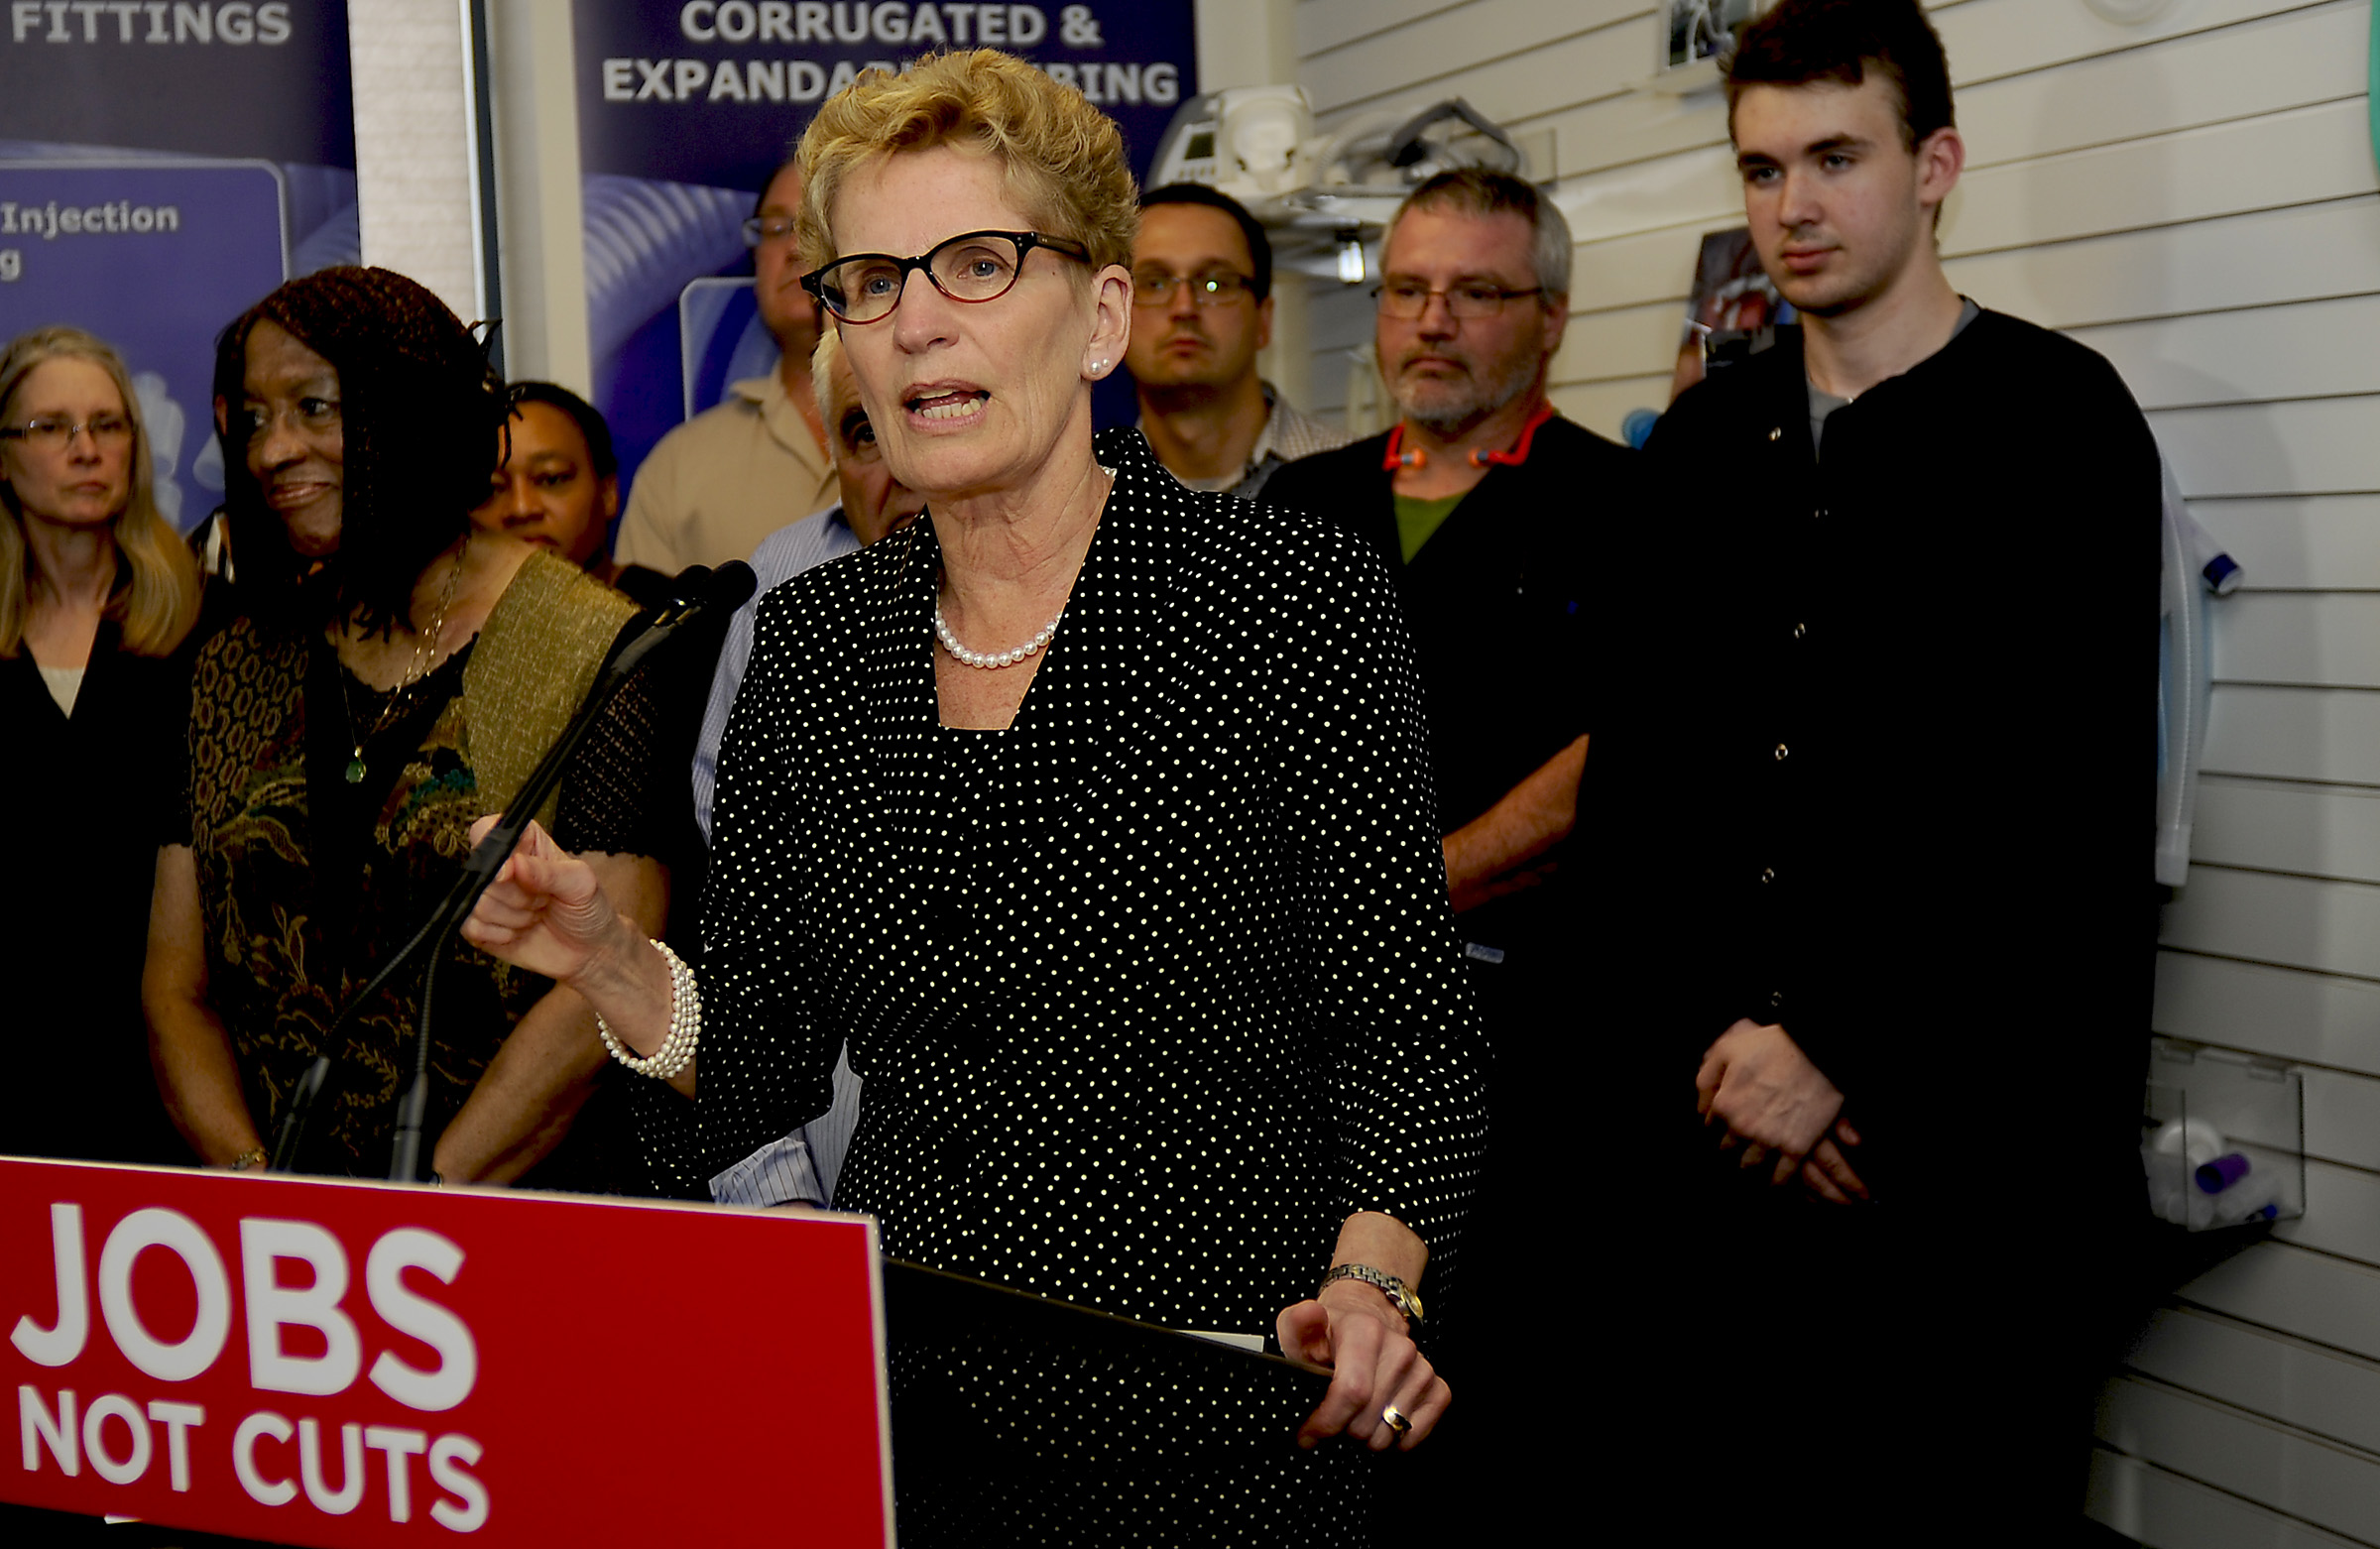 Power talk with Premier Wynne